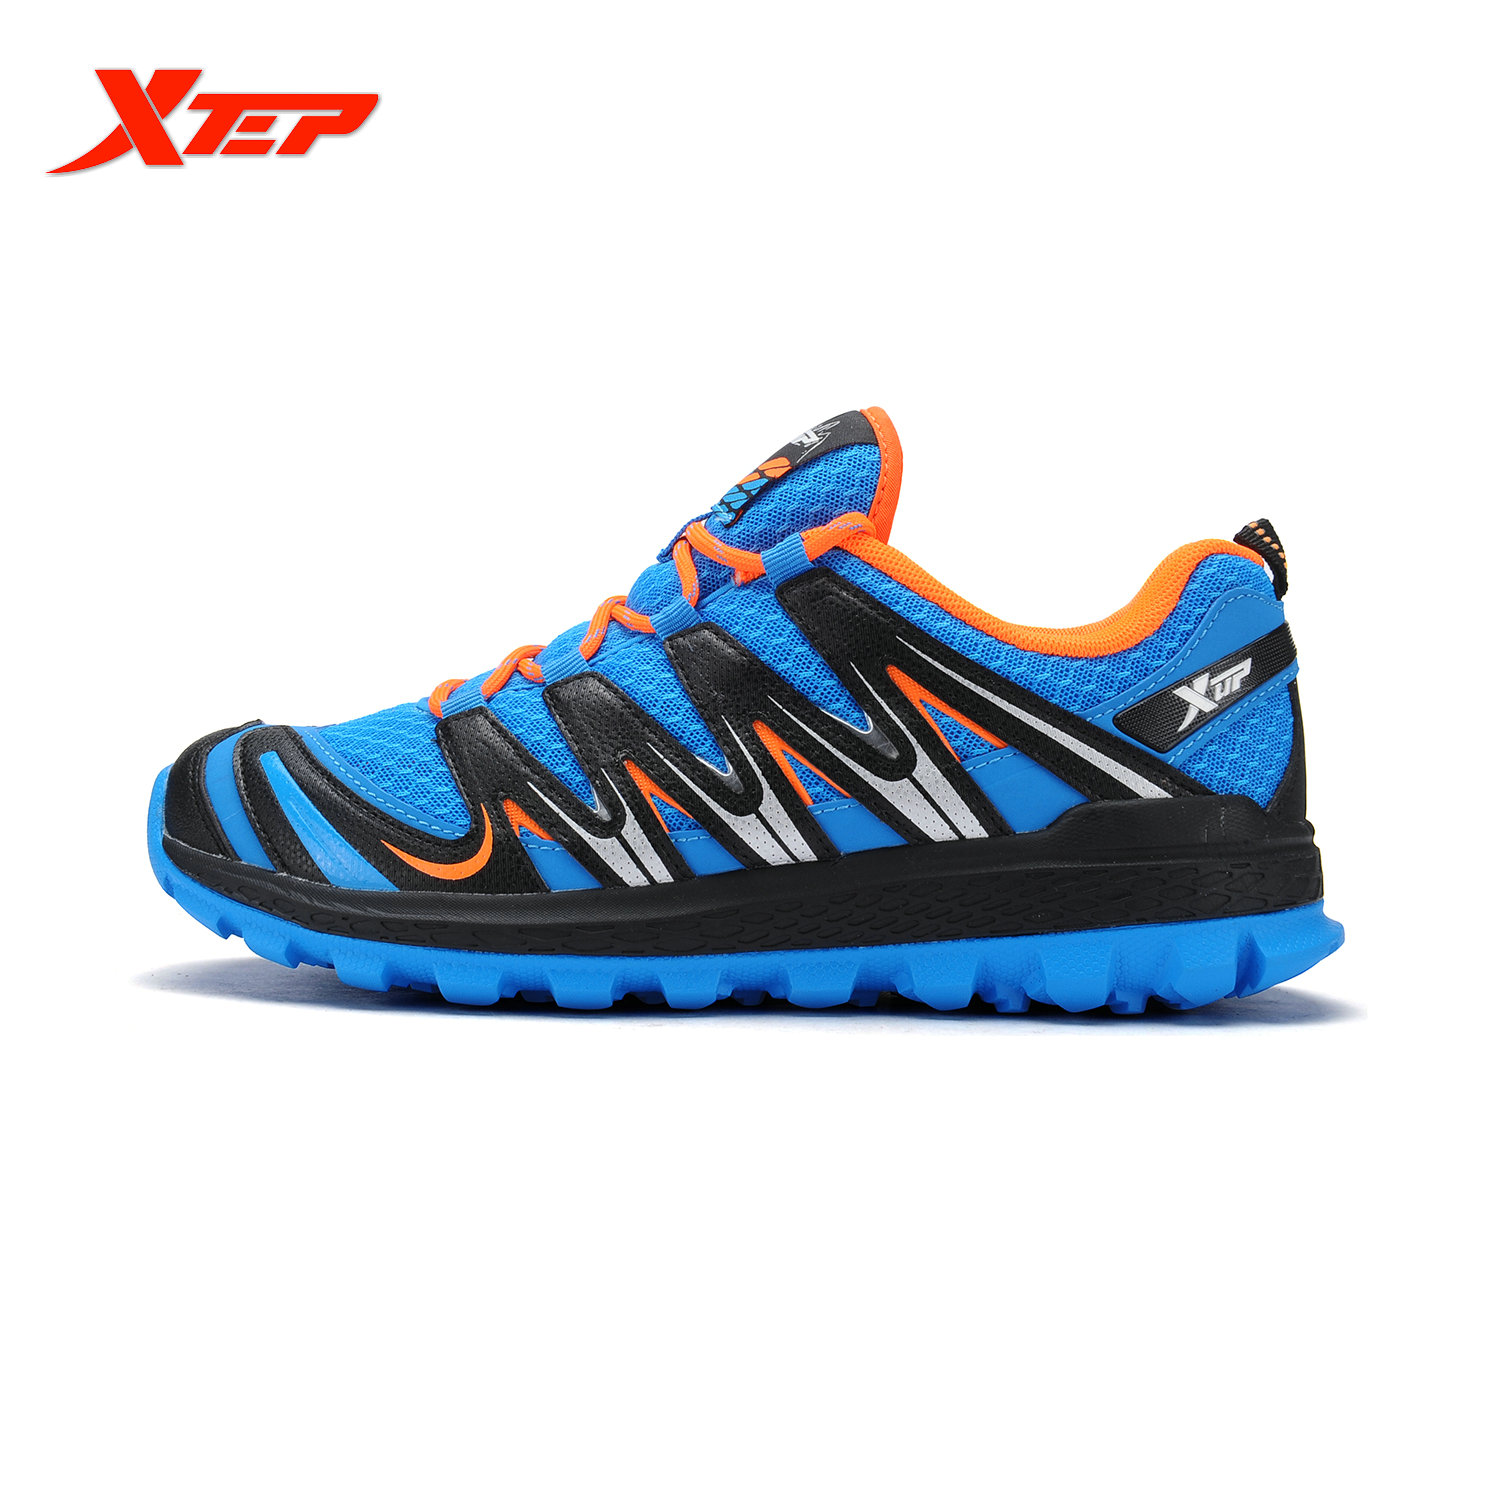 Xtep Brand 2018 New Summer Men S Running Shoes Cross Country Trail Air Mesh Sneakers